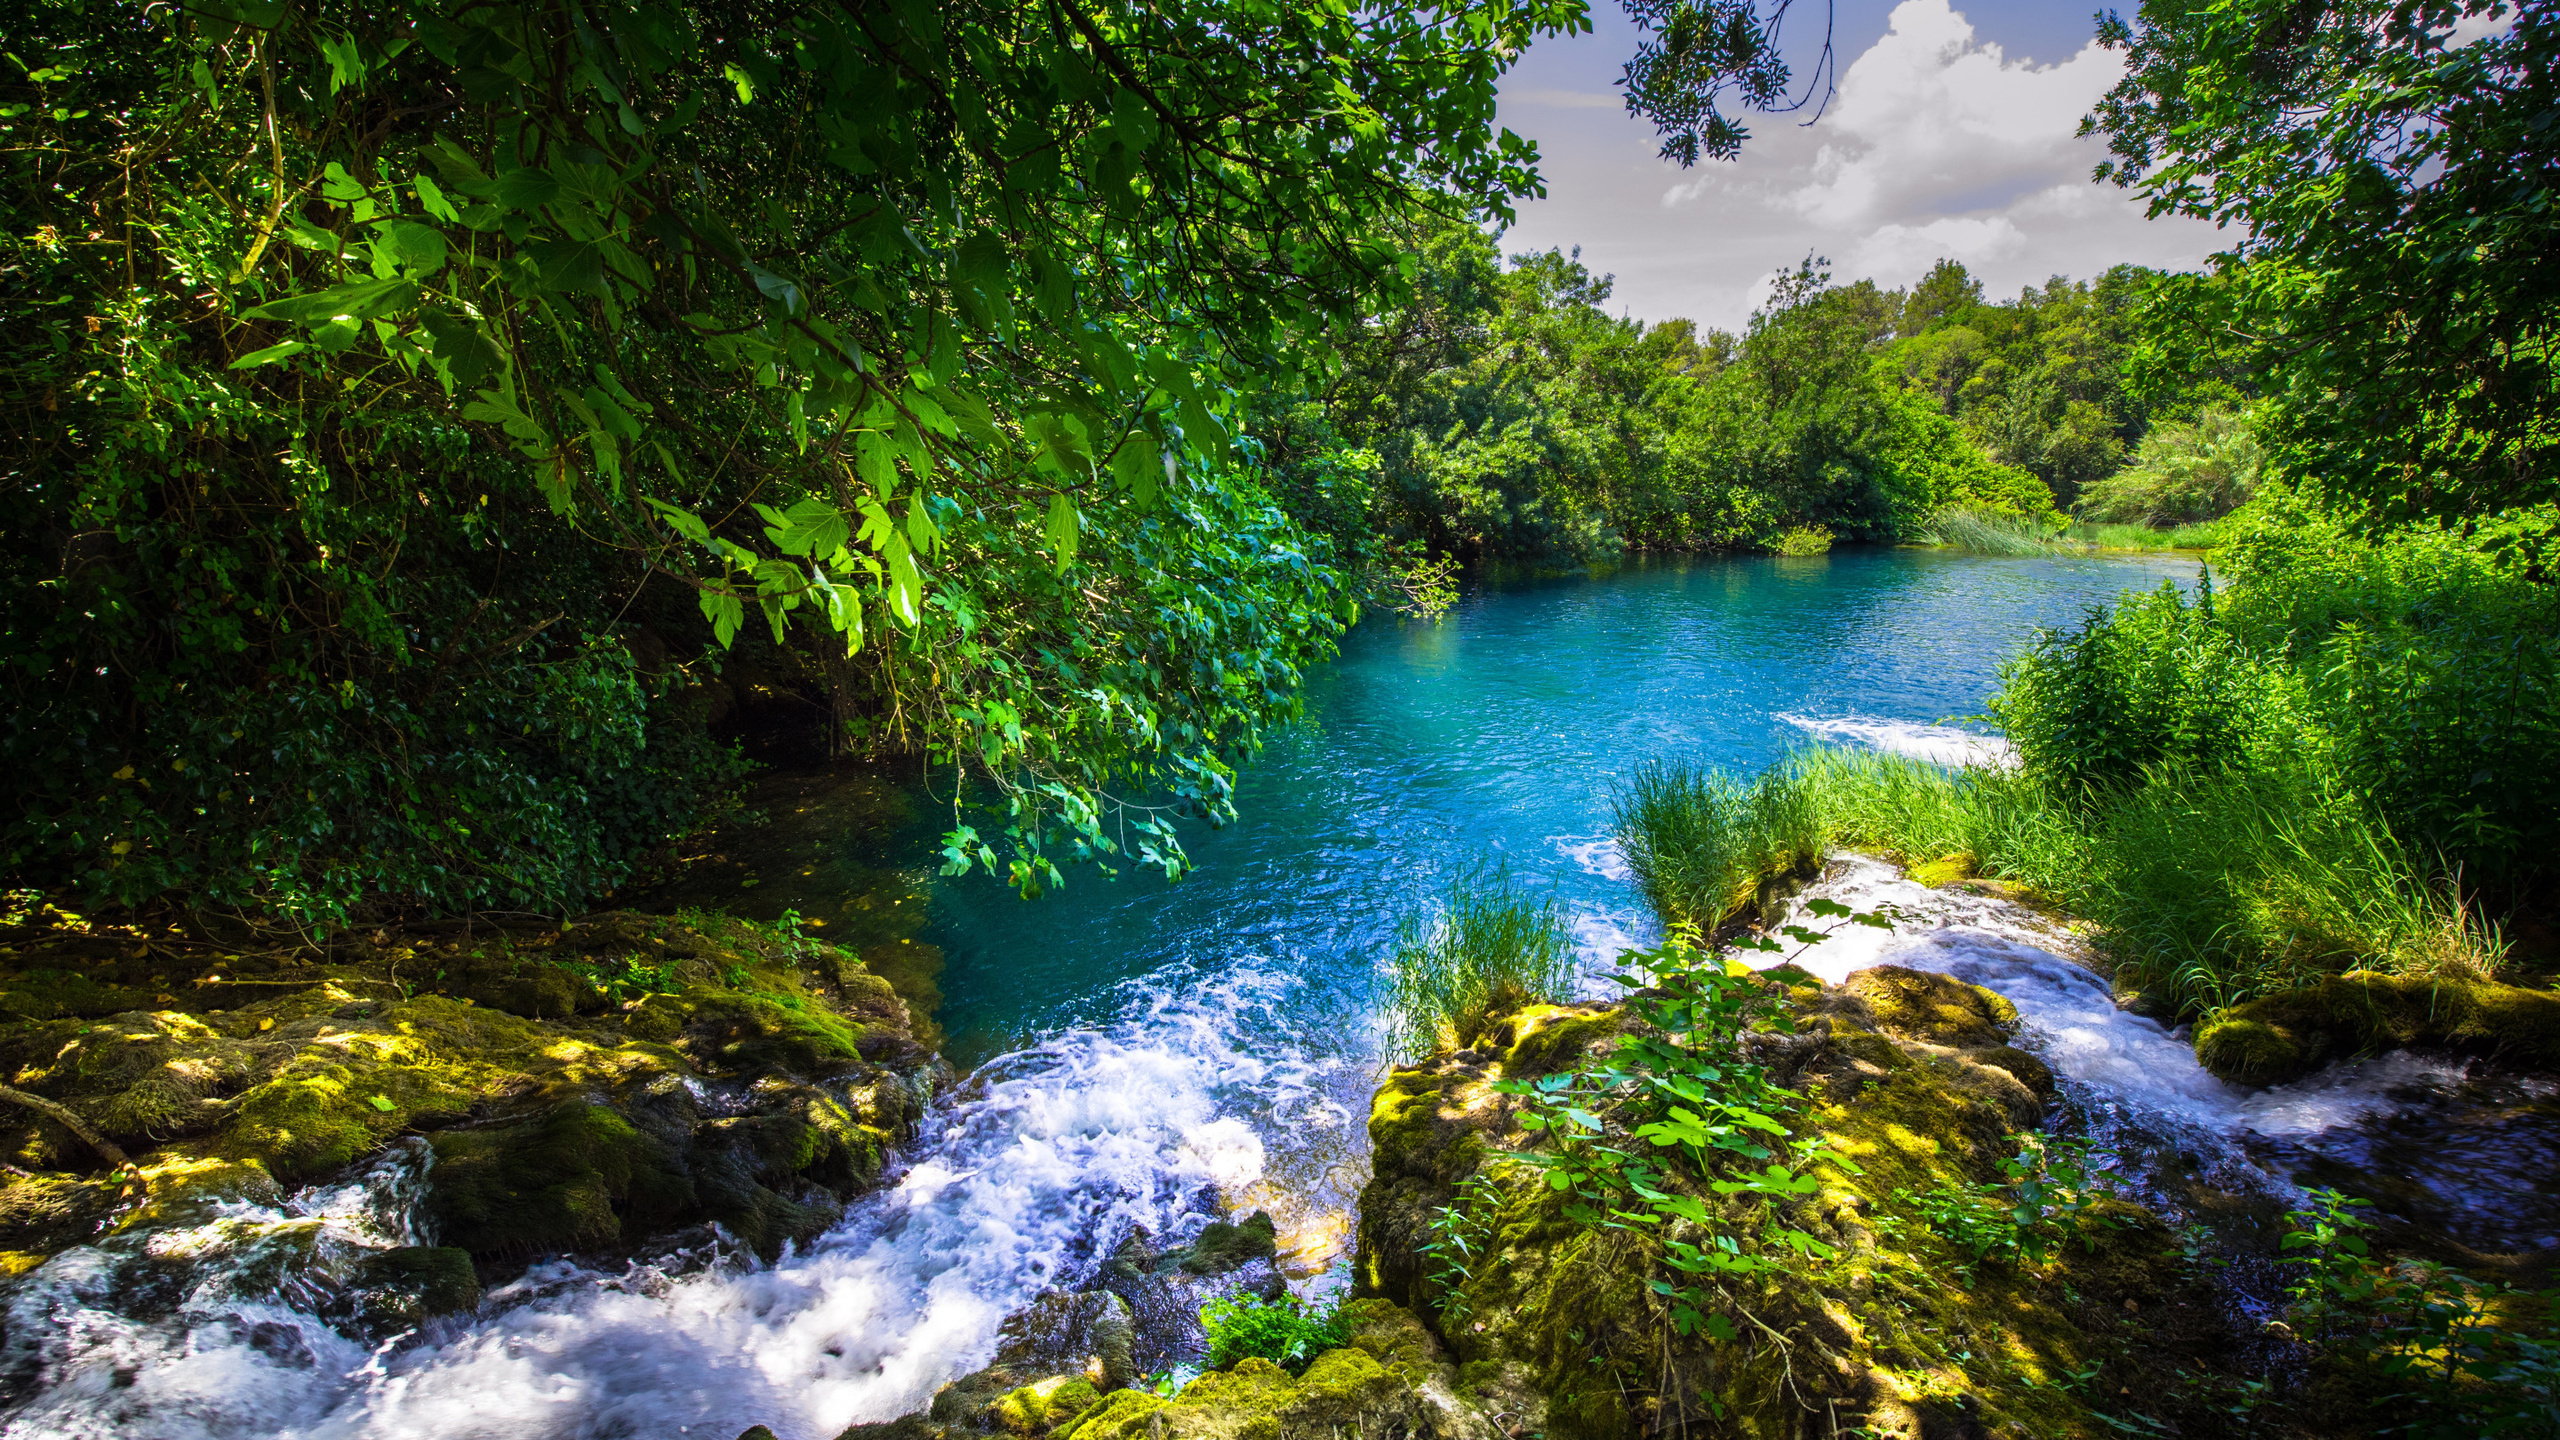 krka river, forest, river, beautiful landscape, krka national park, croatia